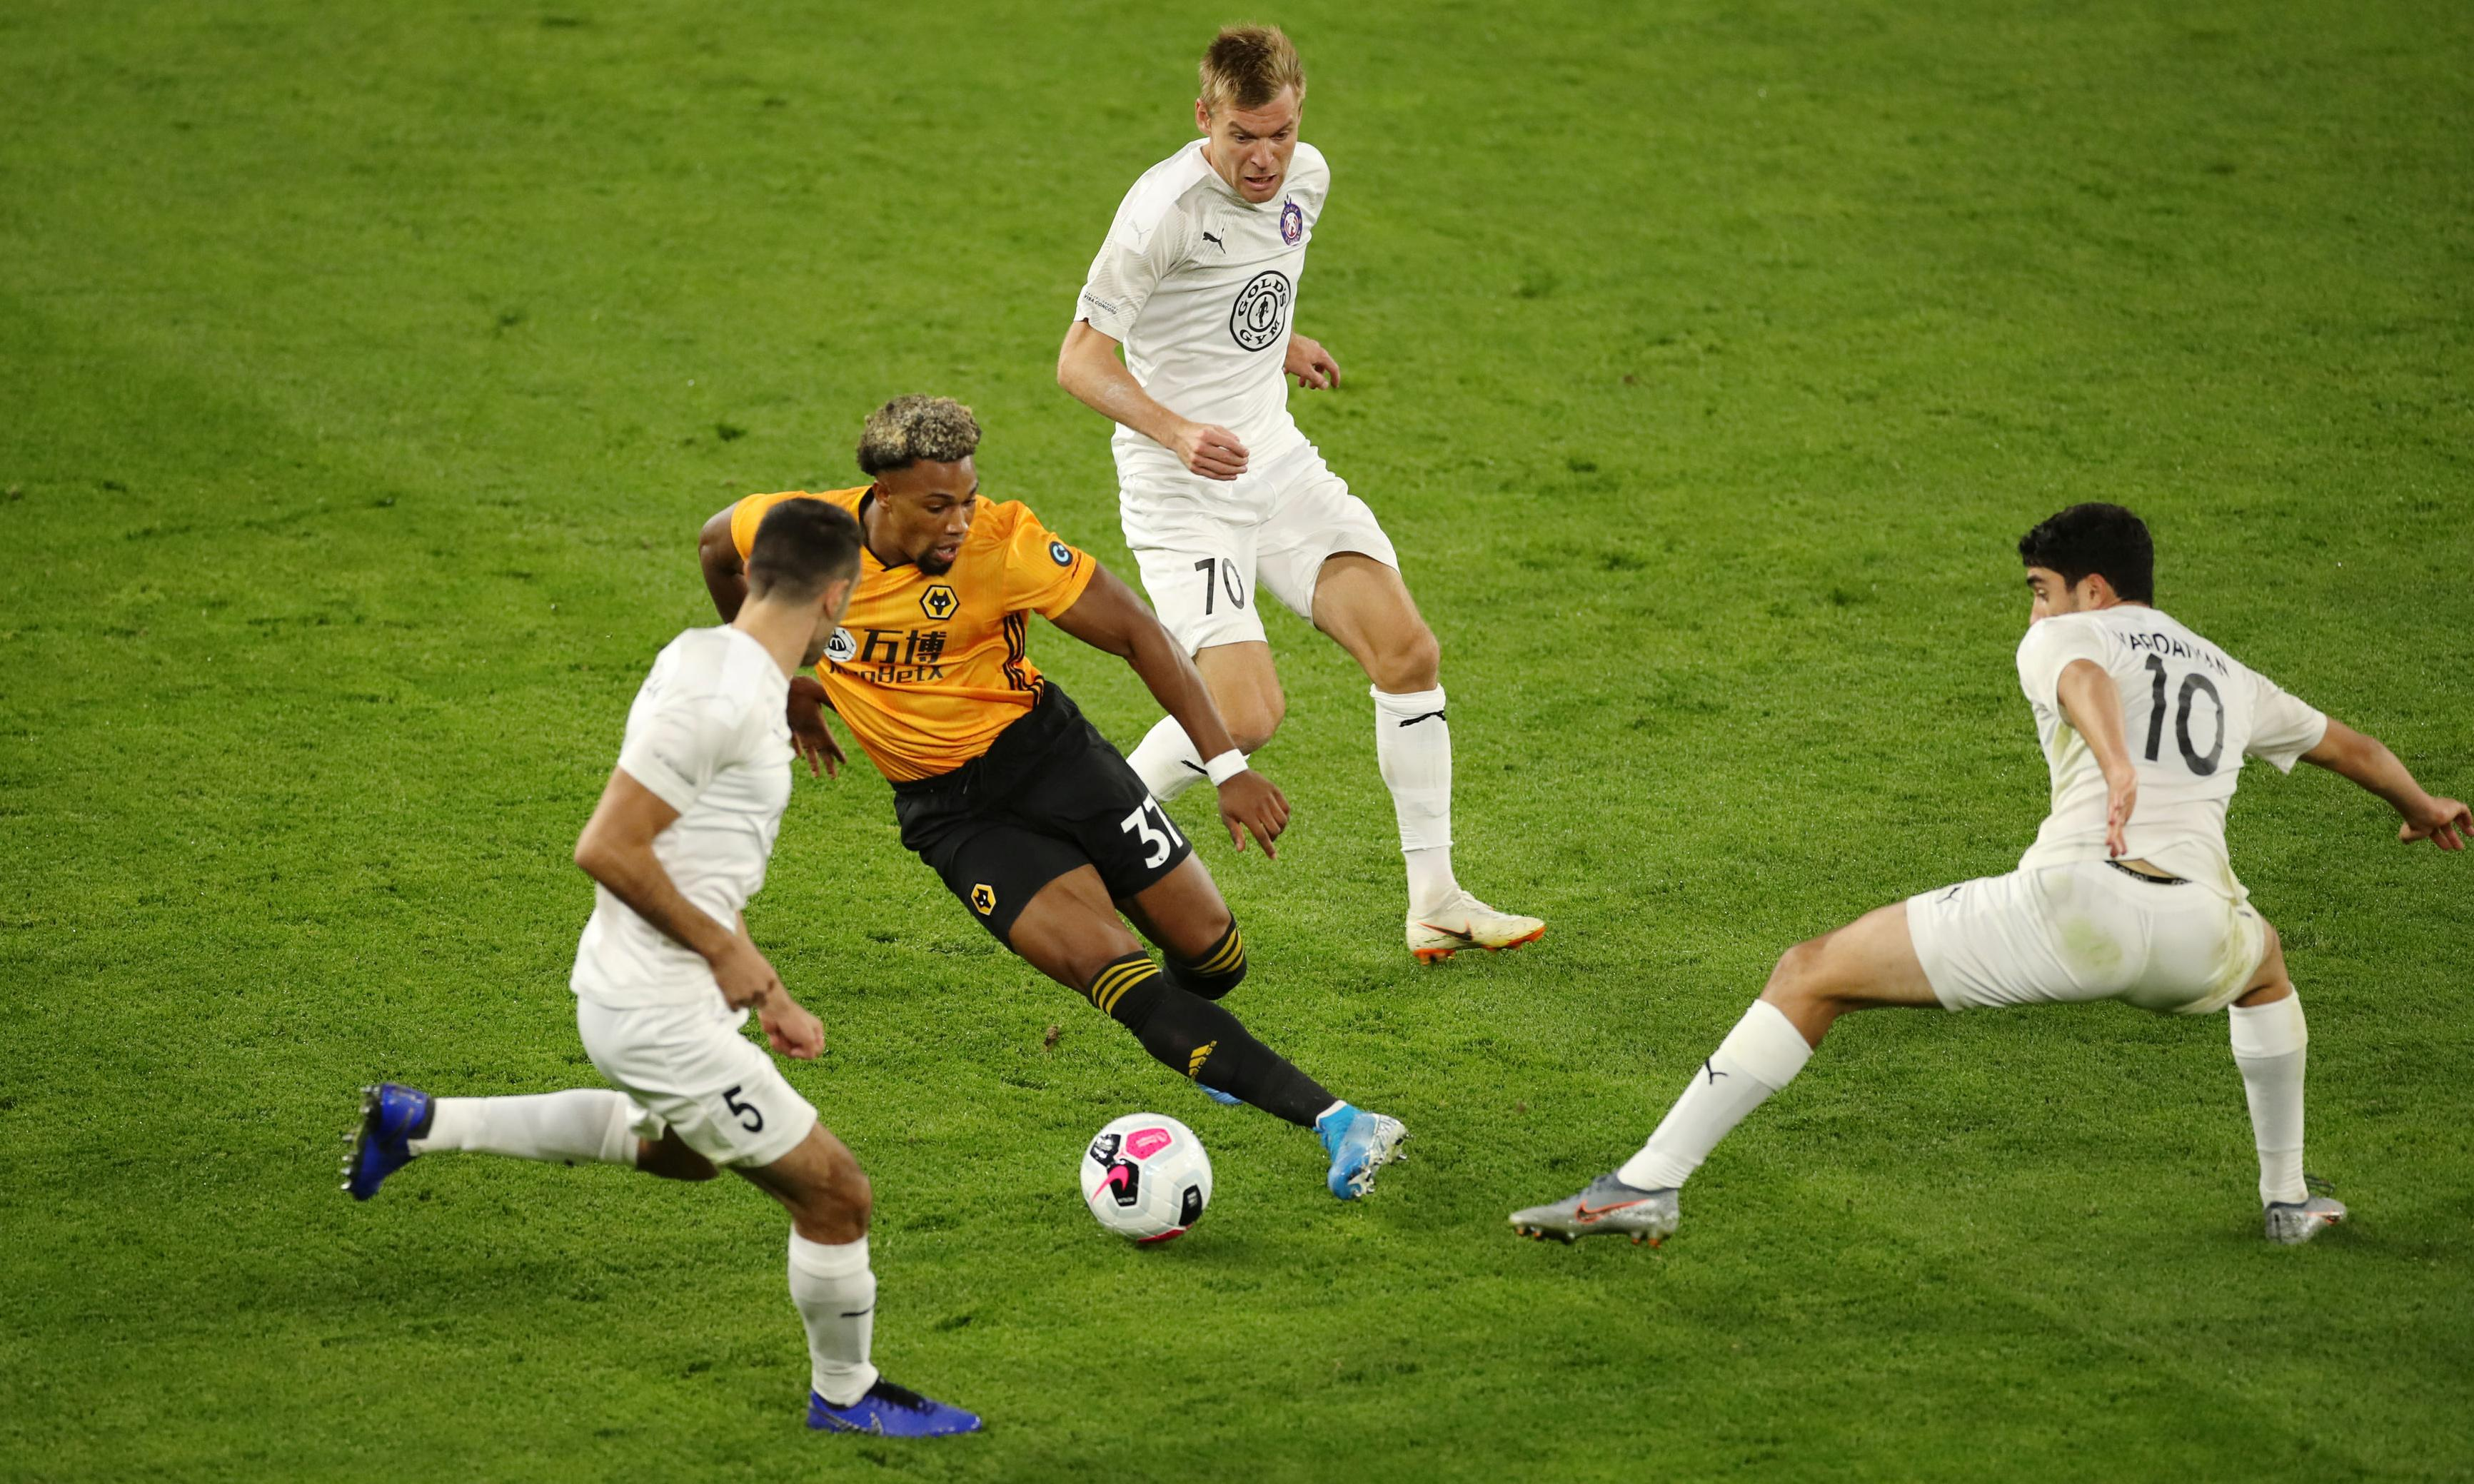 'We're building a player' – the transformation of Wolves' Adama Traoré